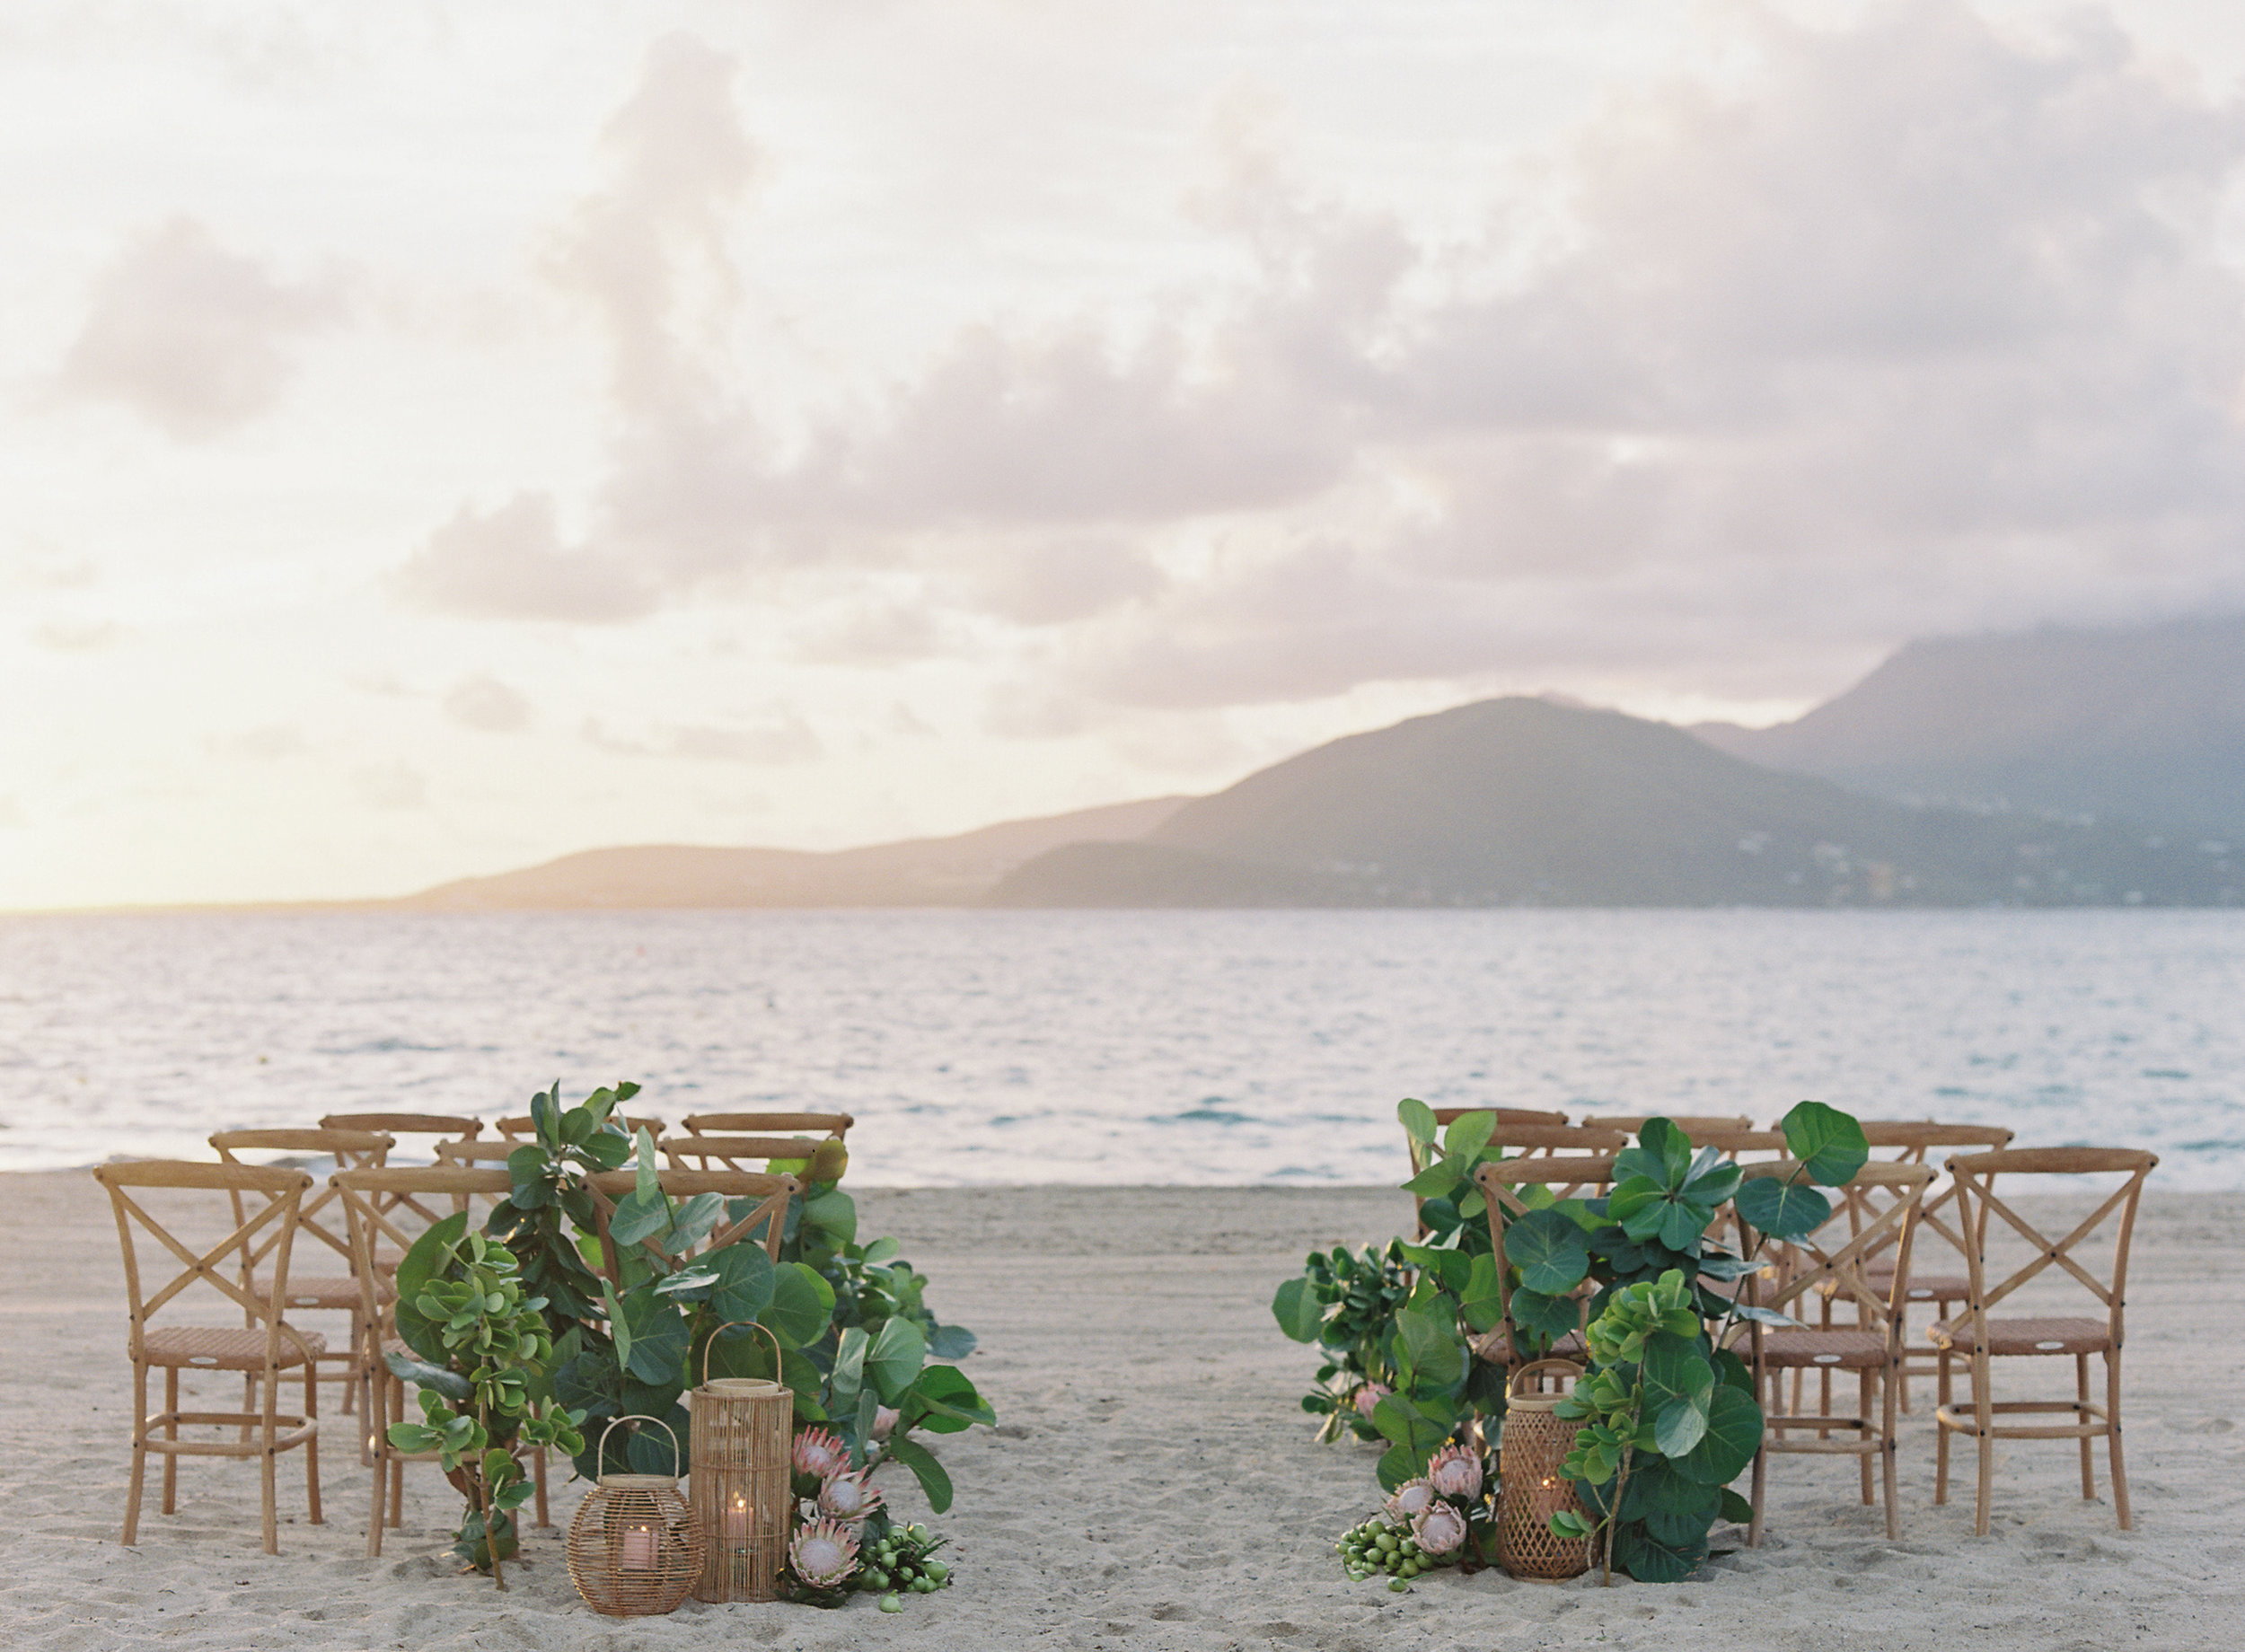 laura gordon - 361-lauragordonphotography_stkitts.jpg